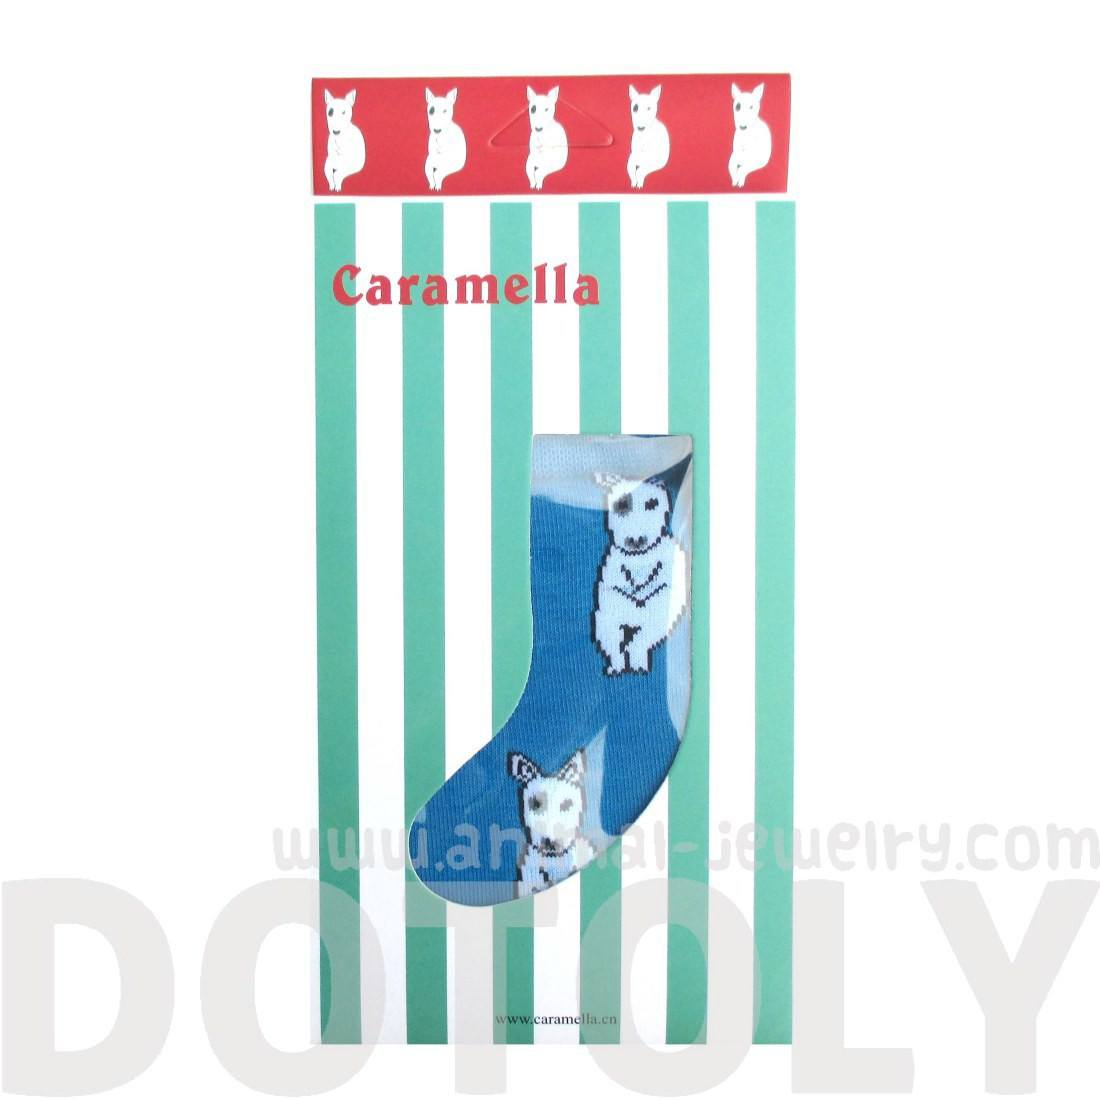 Bull Terrier Puppy Dog Animal Graphic Print Cotton Long Socks in Blue